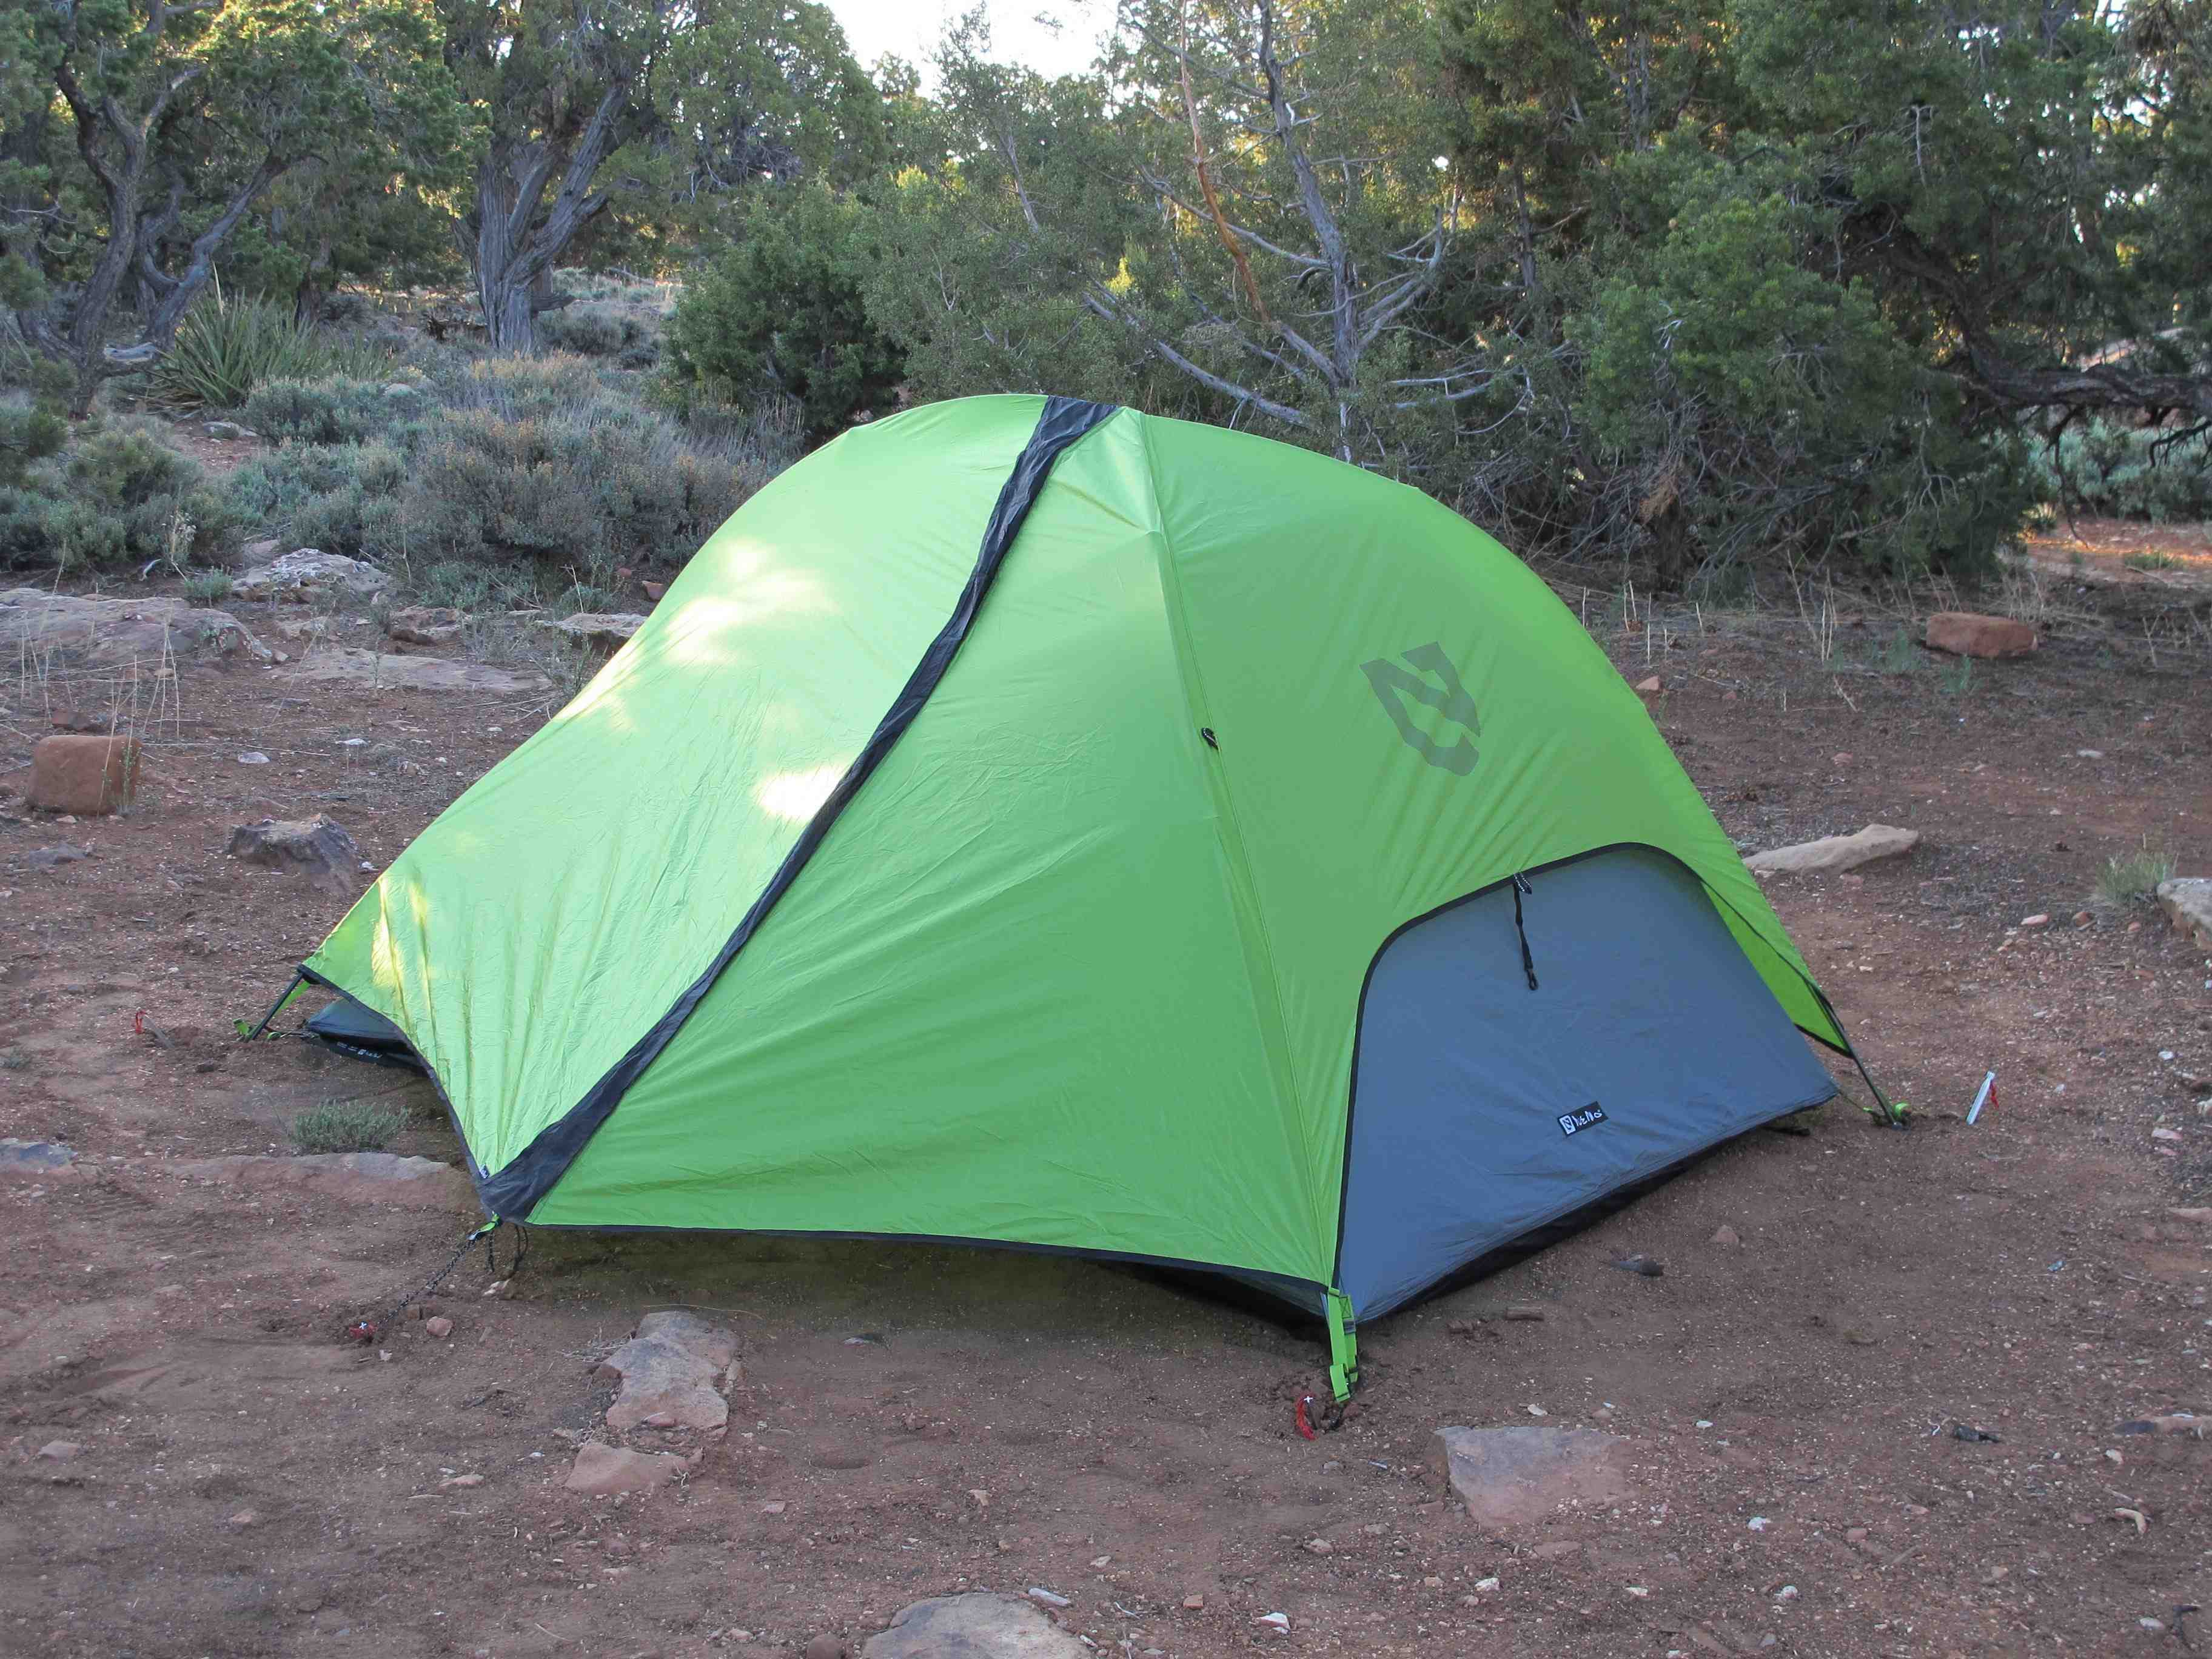 As a final footnote the North American tent market clearly has a preference for free-standing tents as they are the most popular and offered in a wider ... & Shelter from the Storm: How to Select a Ground Tent u2013 Expedition ...